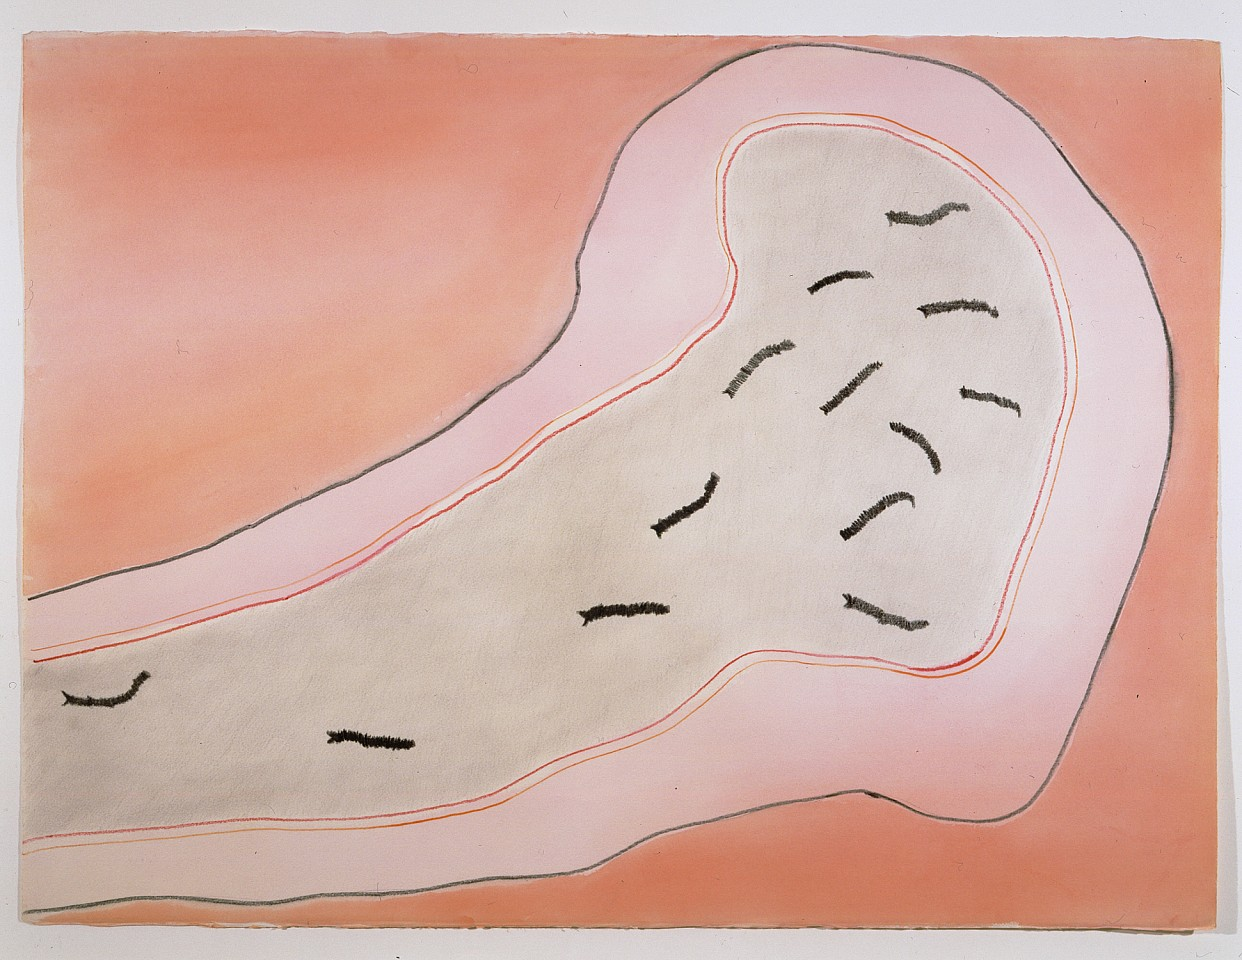 Ree Morton ,   Untitled (Cell Drawing with Pink)  ,  1974     watercolor, crayon and graphite on paper     22½ x 30¼ in./57 x 77 cm     REM-74-DR-049